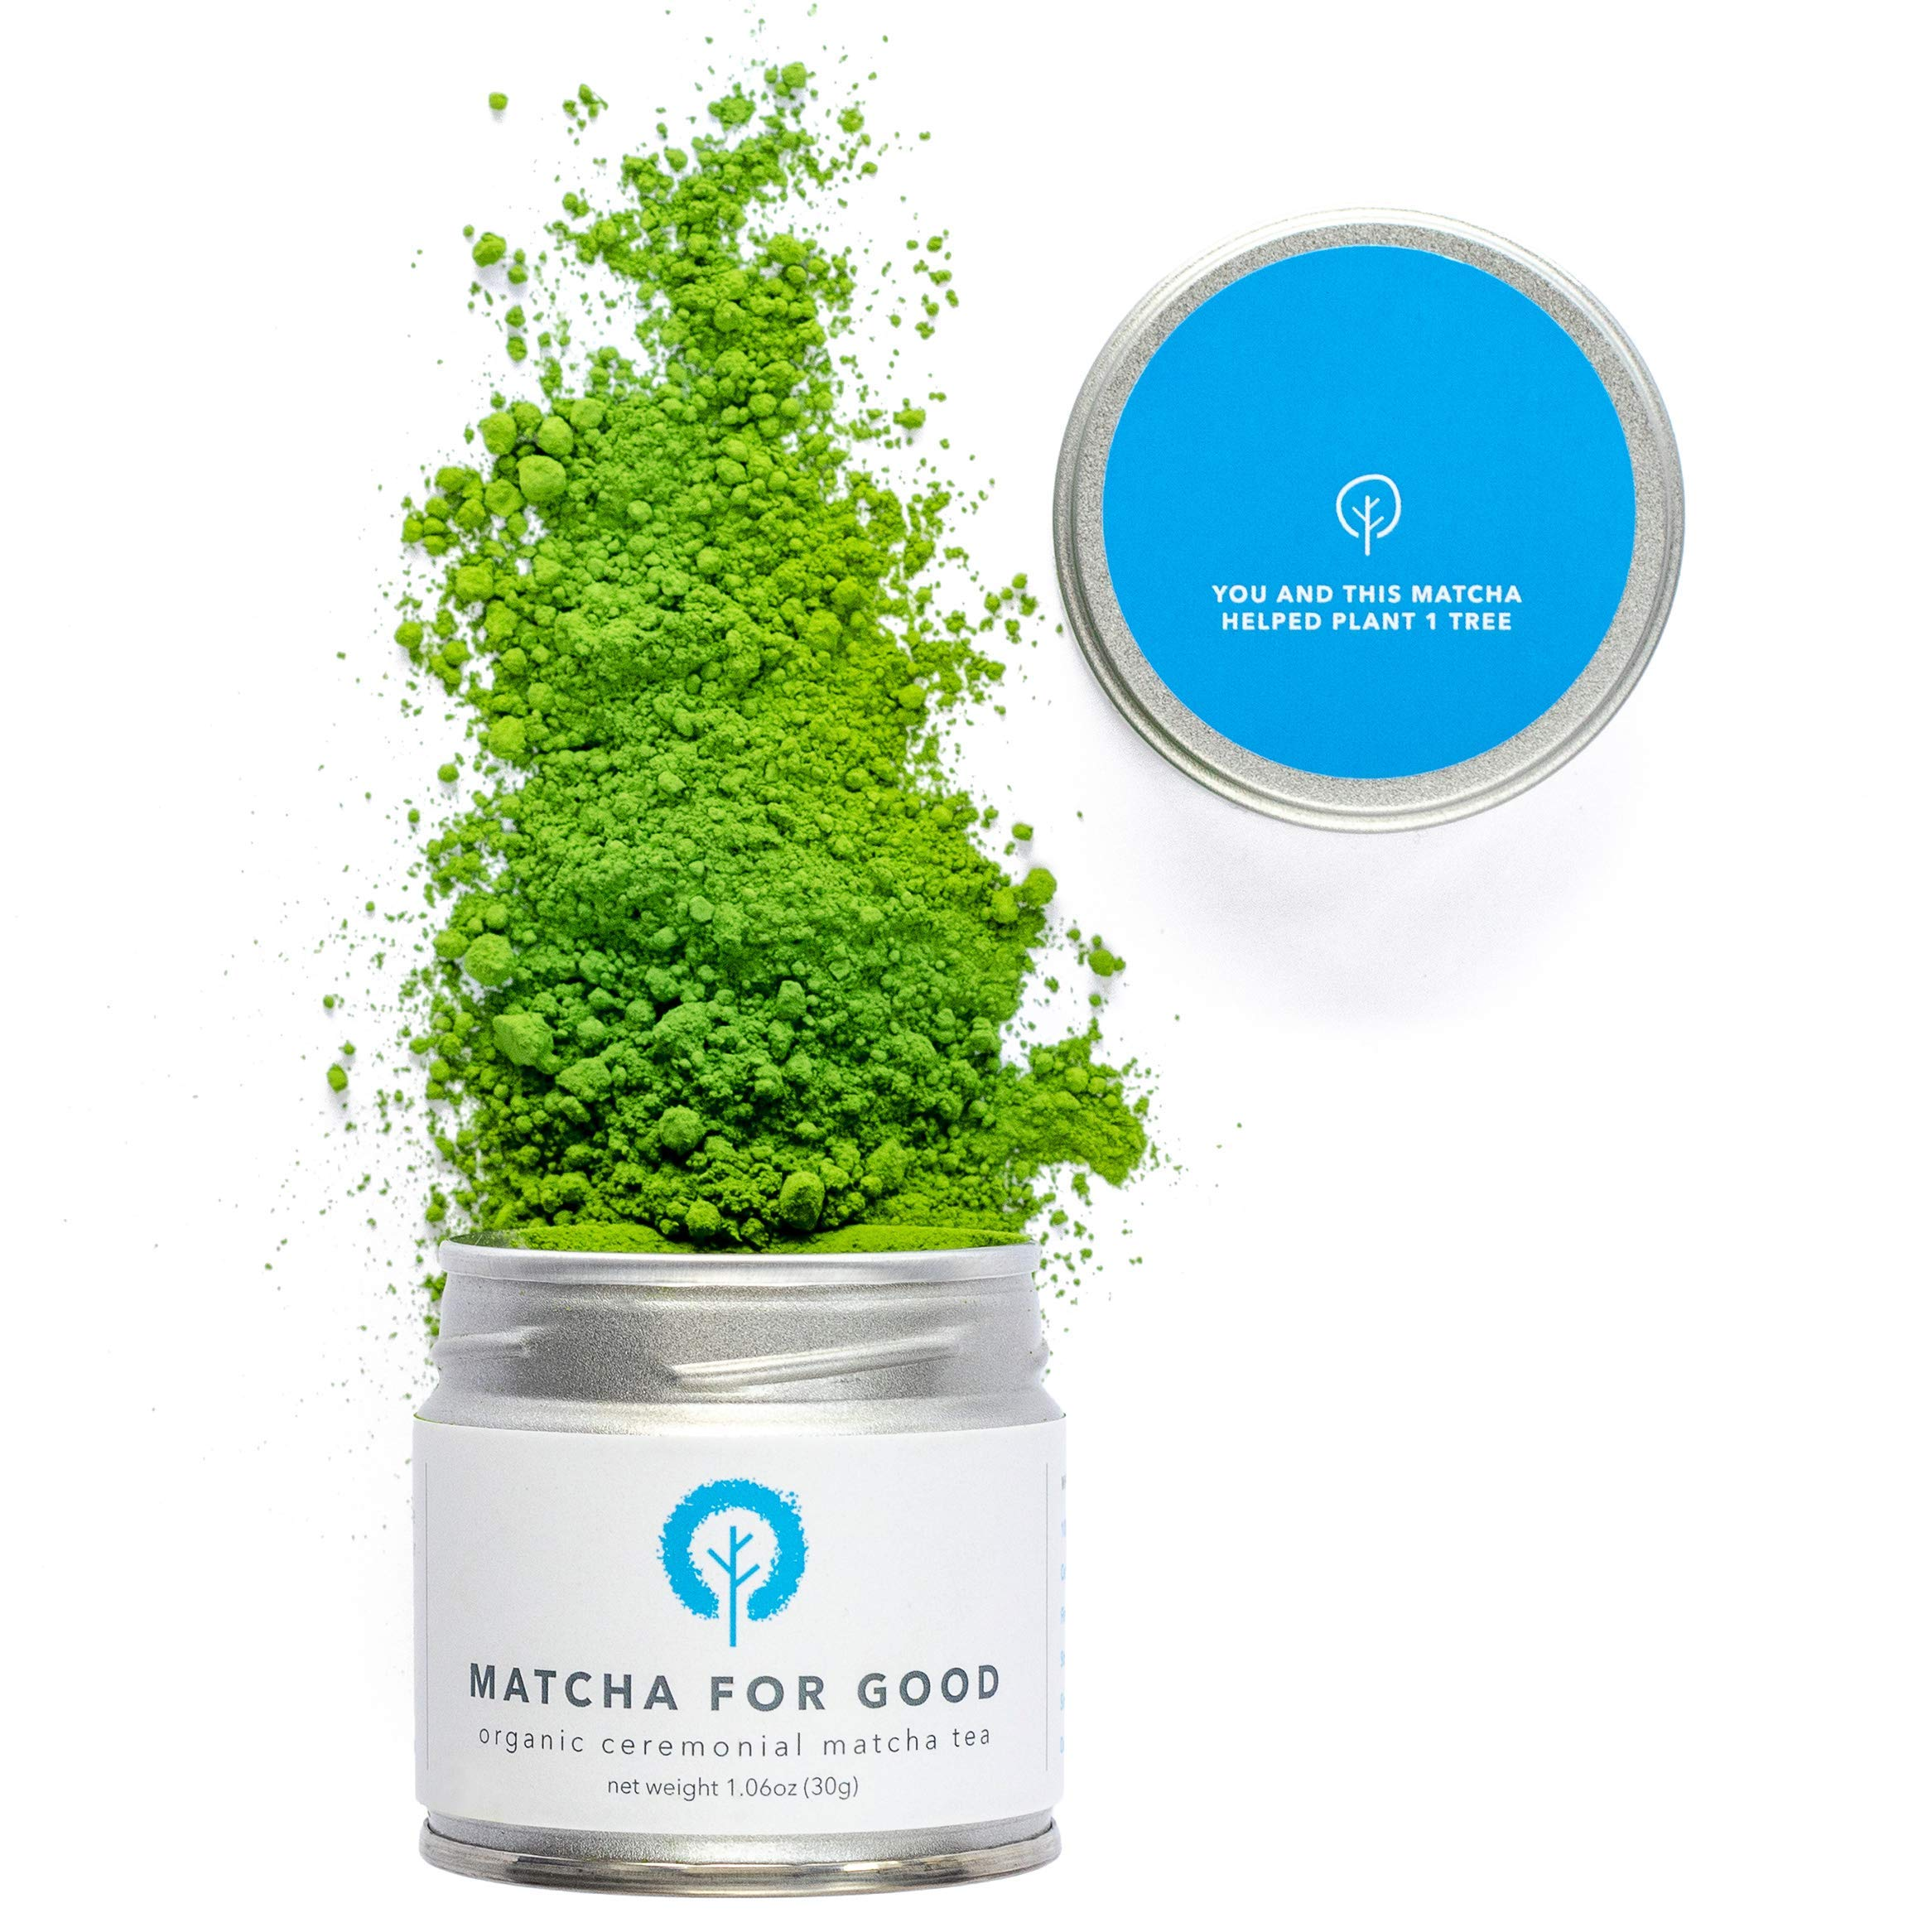 Matcha for Good - Organic Ceremonial-Grade Superior Matcha - Hand-Picked First-Harvest One-for-One Single-Origin Stone-Ground Japanese Green Tea Powder